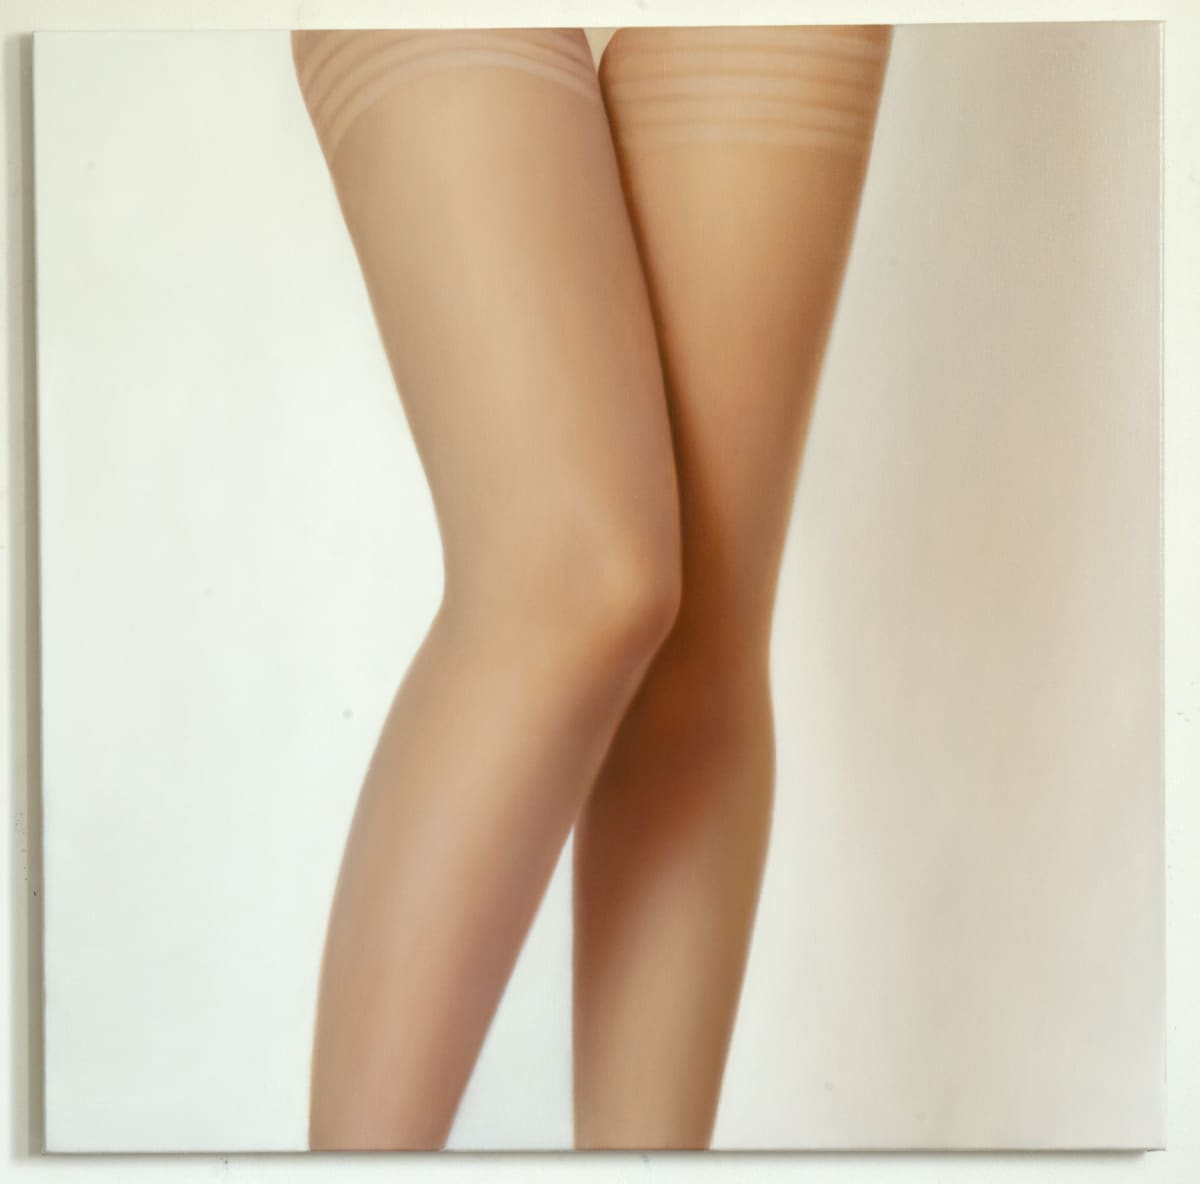 ARNOUT KILLIAN Legs, 2018 oil on canvas 110 x 110cm signed and dated